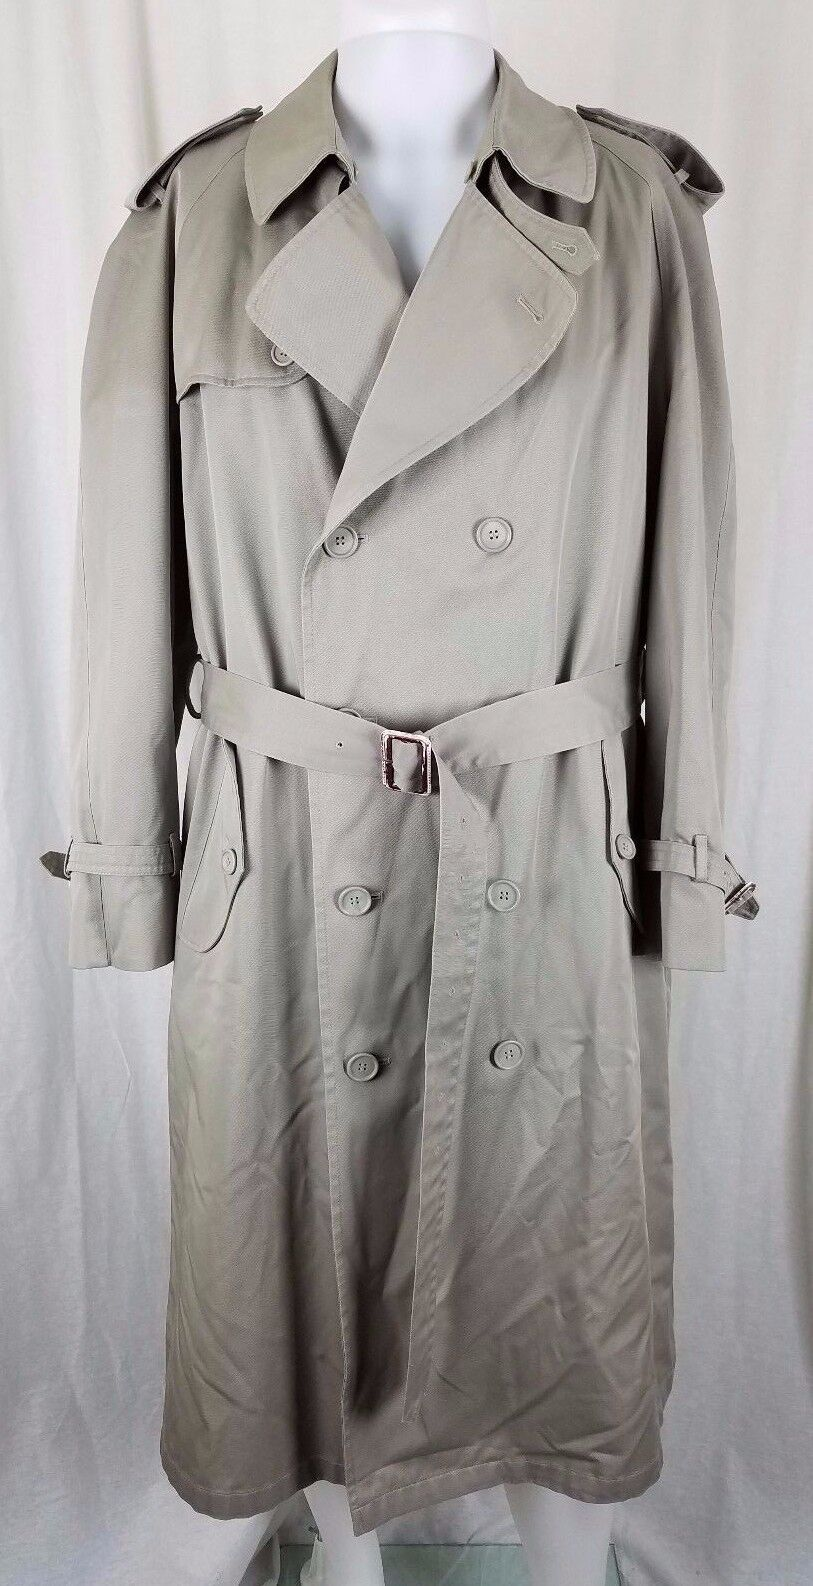 Stafford Insulated Double Breasted Trench Coat  Herren 42R Removable Lining Khaki